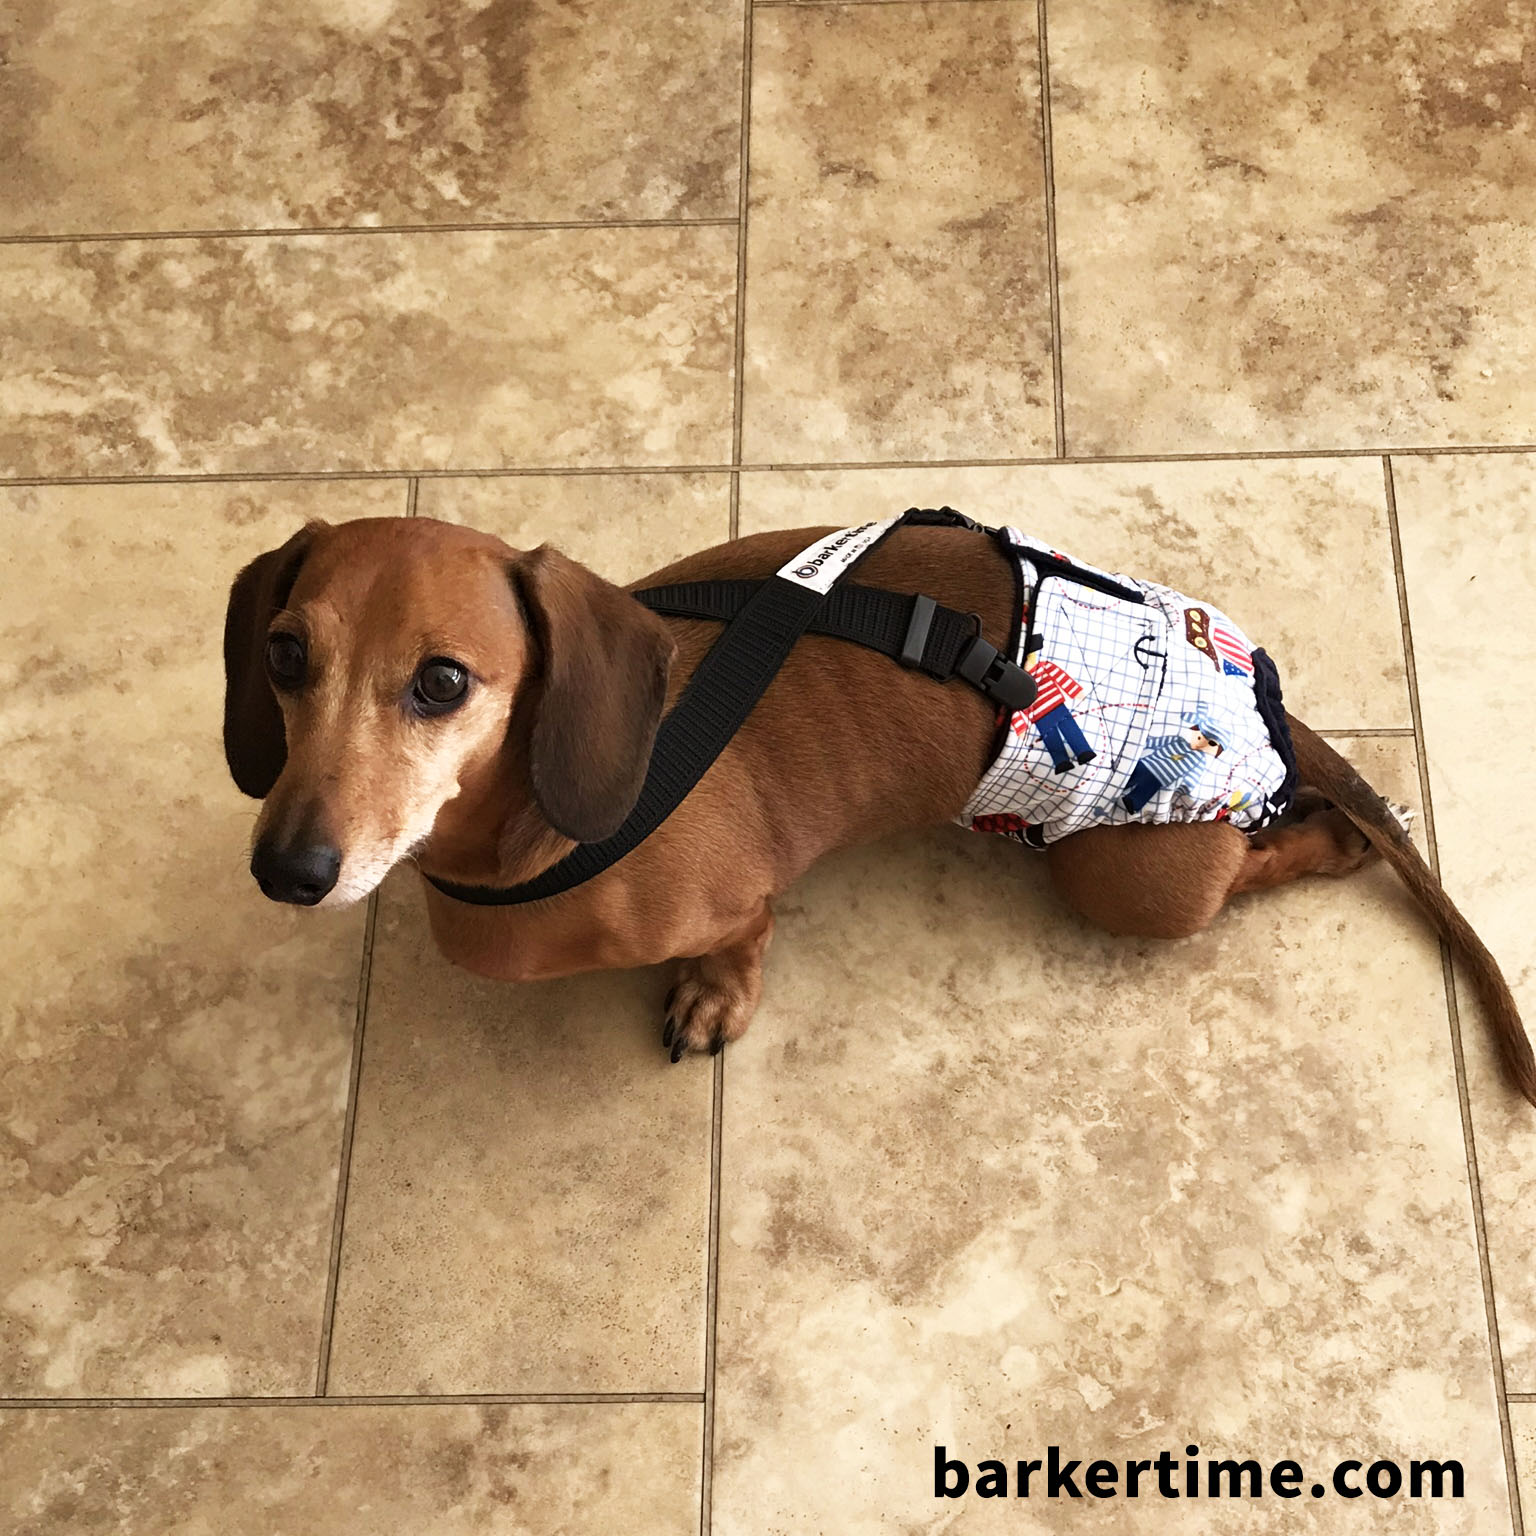 dachshund dog diapers